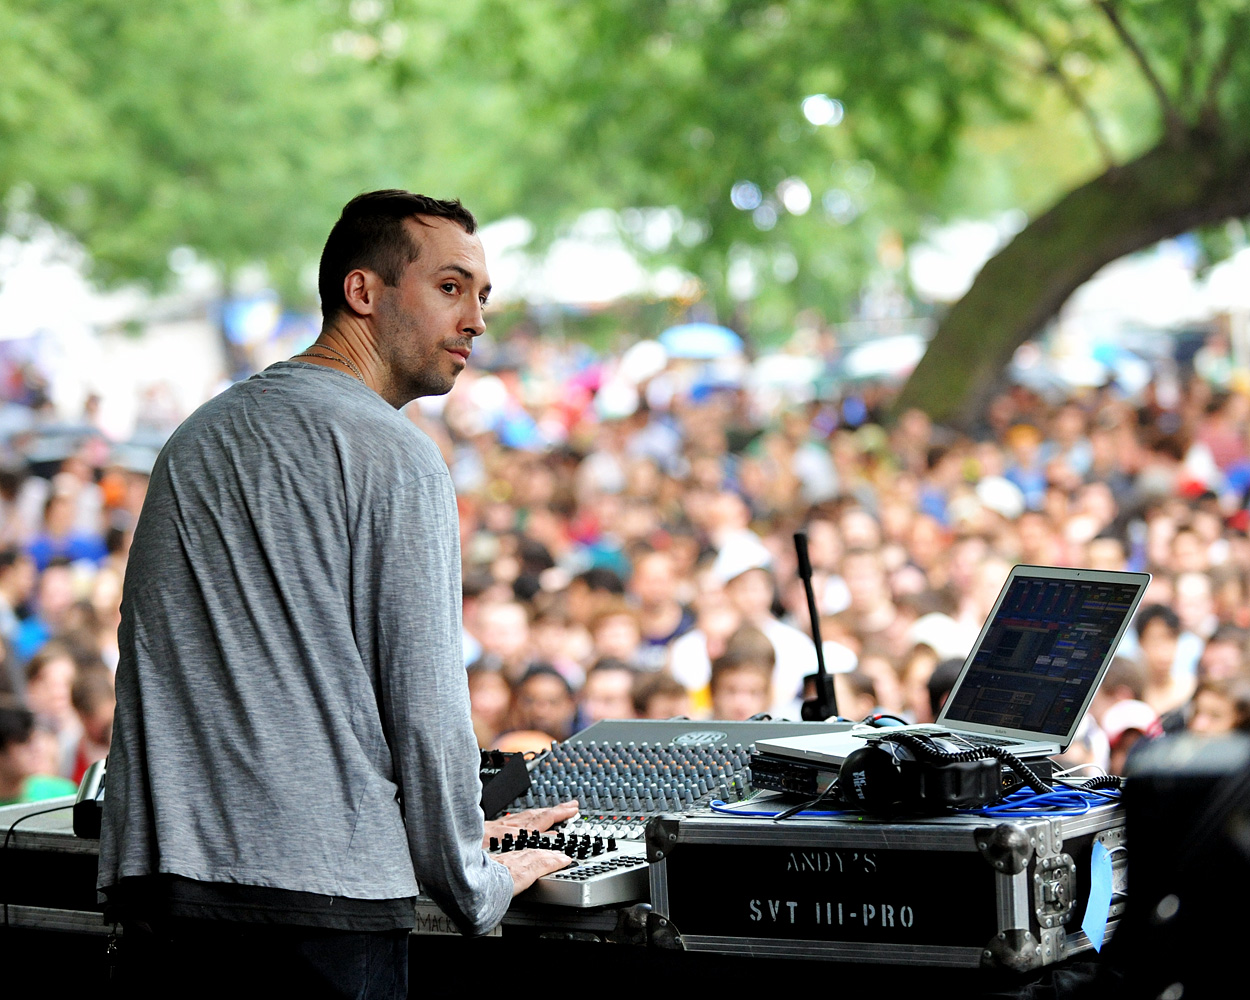 Tim Hecker at the 2012 Pitchfork Music Festival. Friday, July 13, 2012. Photo by Joseph Mohan.